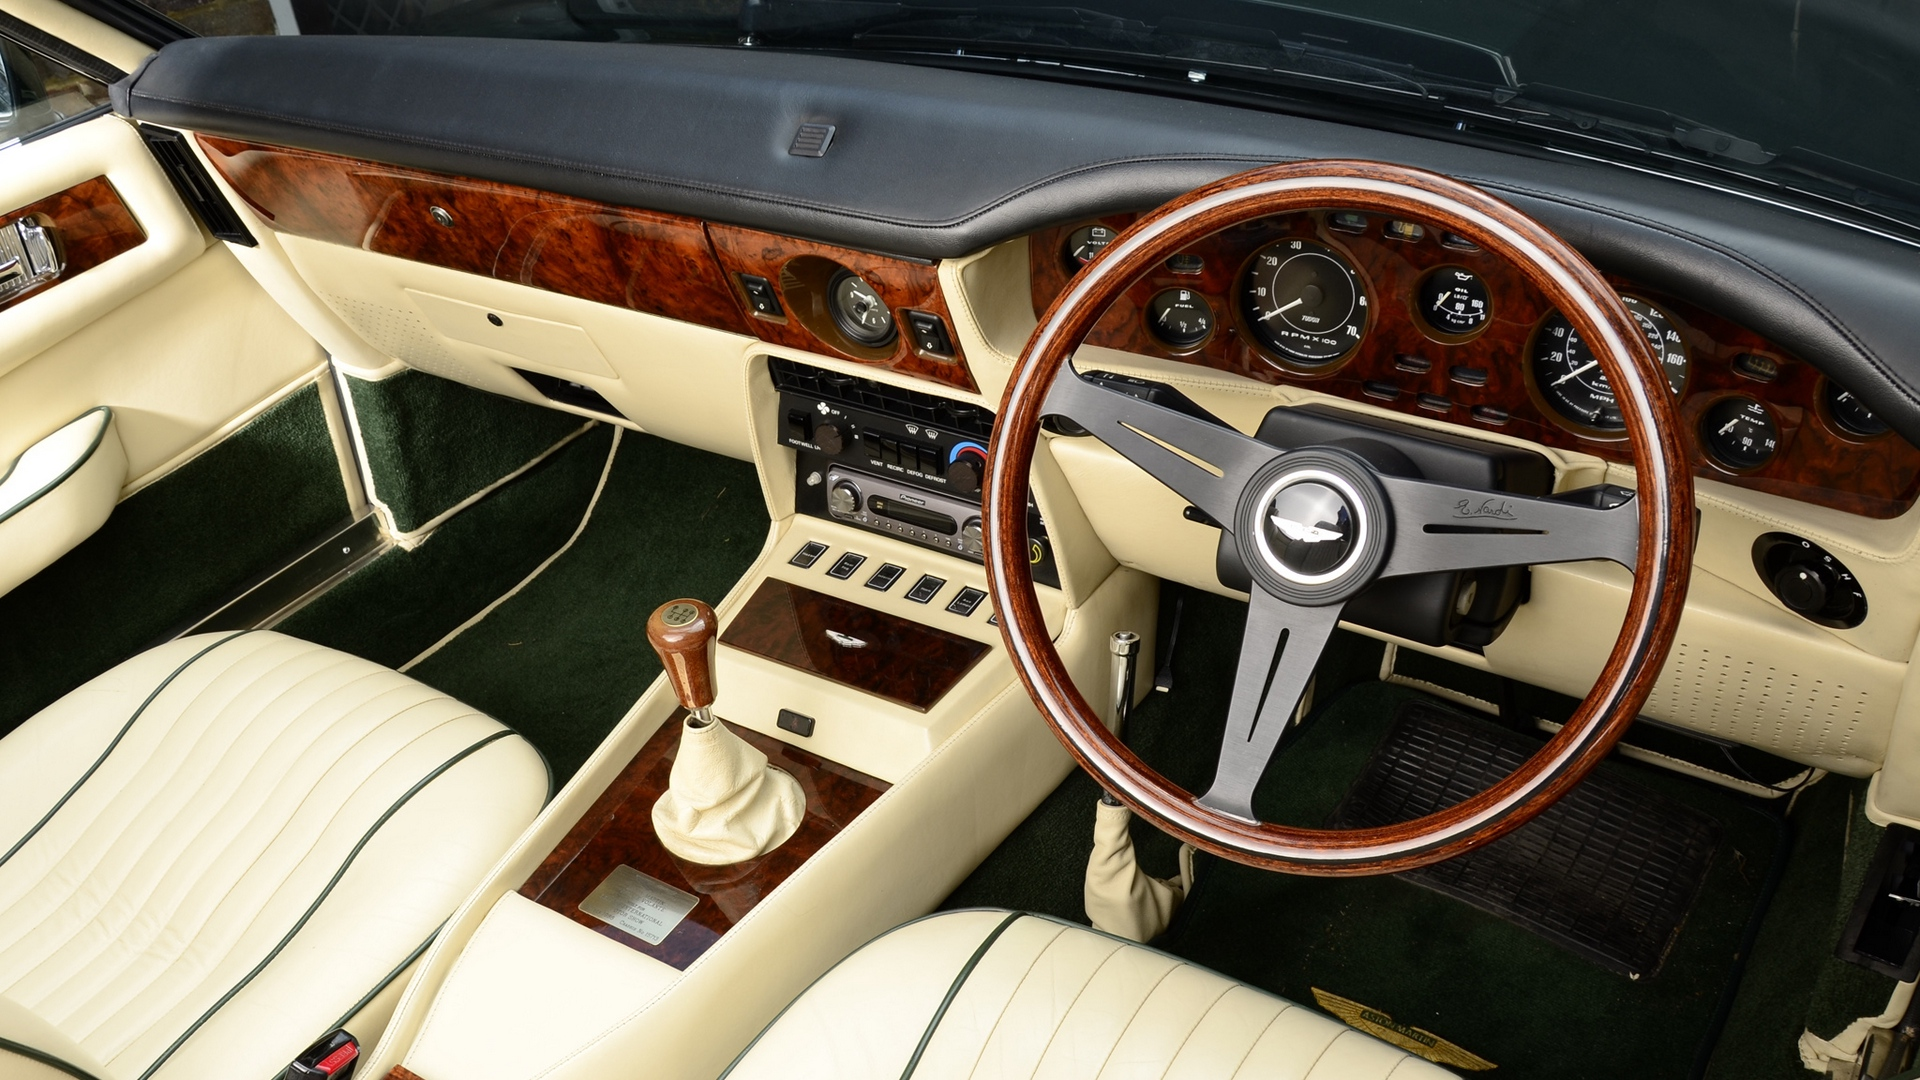 Aston Martin V Vantage Salon Interior Steering Wheel Speedometer X Hd Wallpaper Find Hd Wallpapers